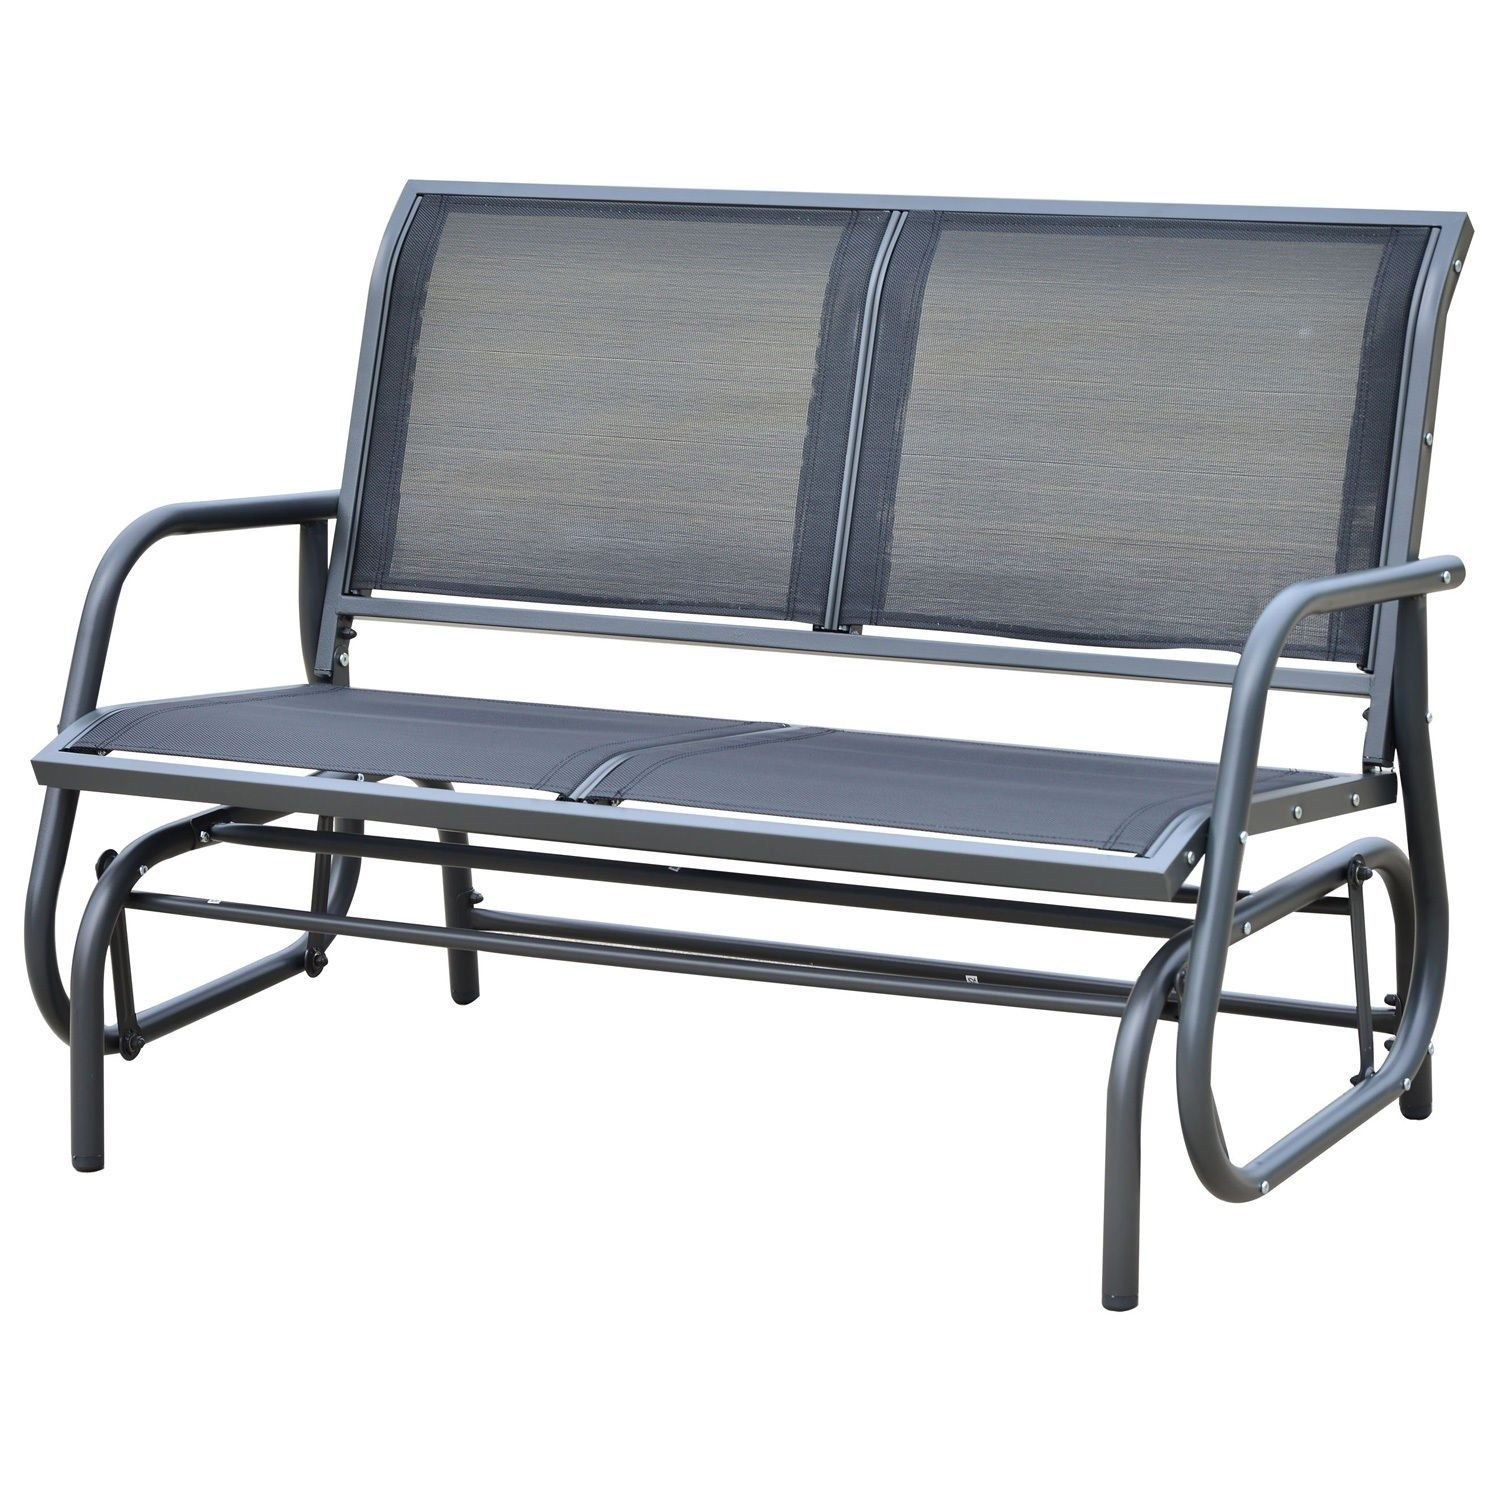 Patio Double 2 Person Glider Bench Rocker Porch Love Seat Swing Chair + FREE E-Book